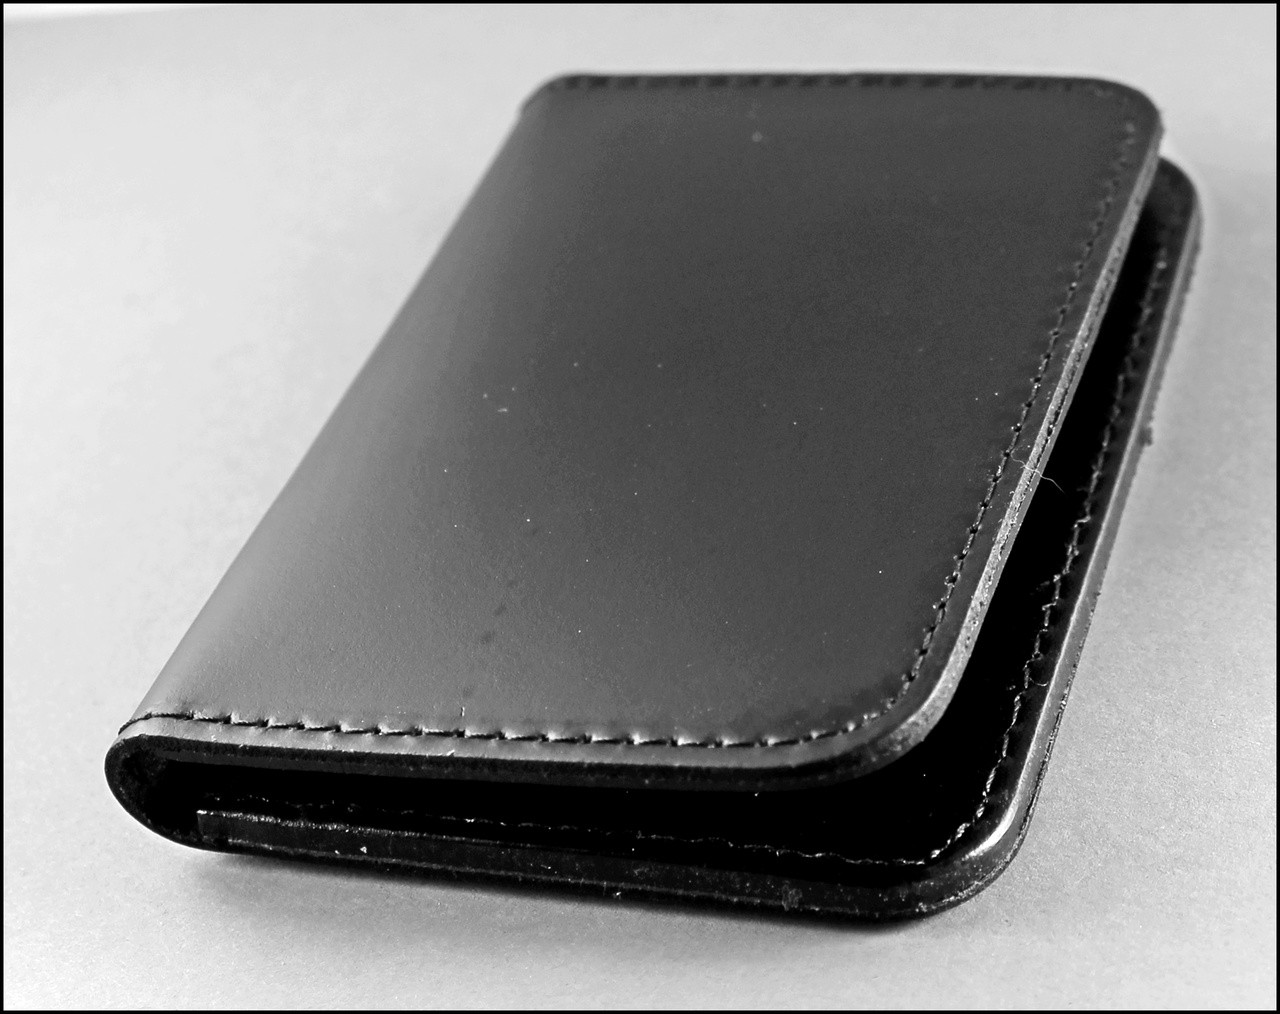 Immigration and Customs Enforcement Officer Mini Badge ID Wallet closed view